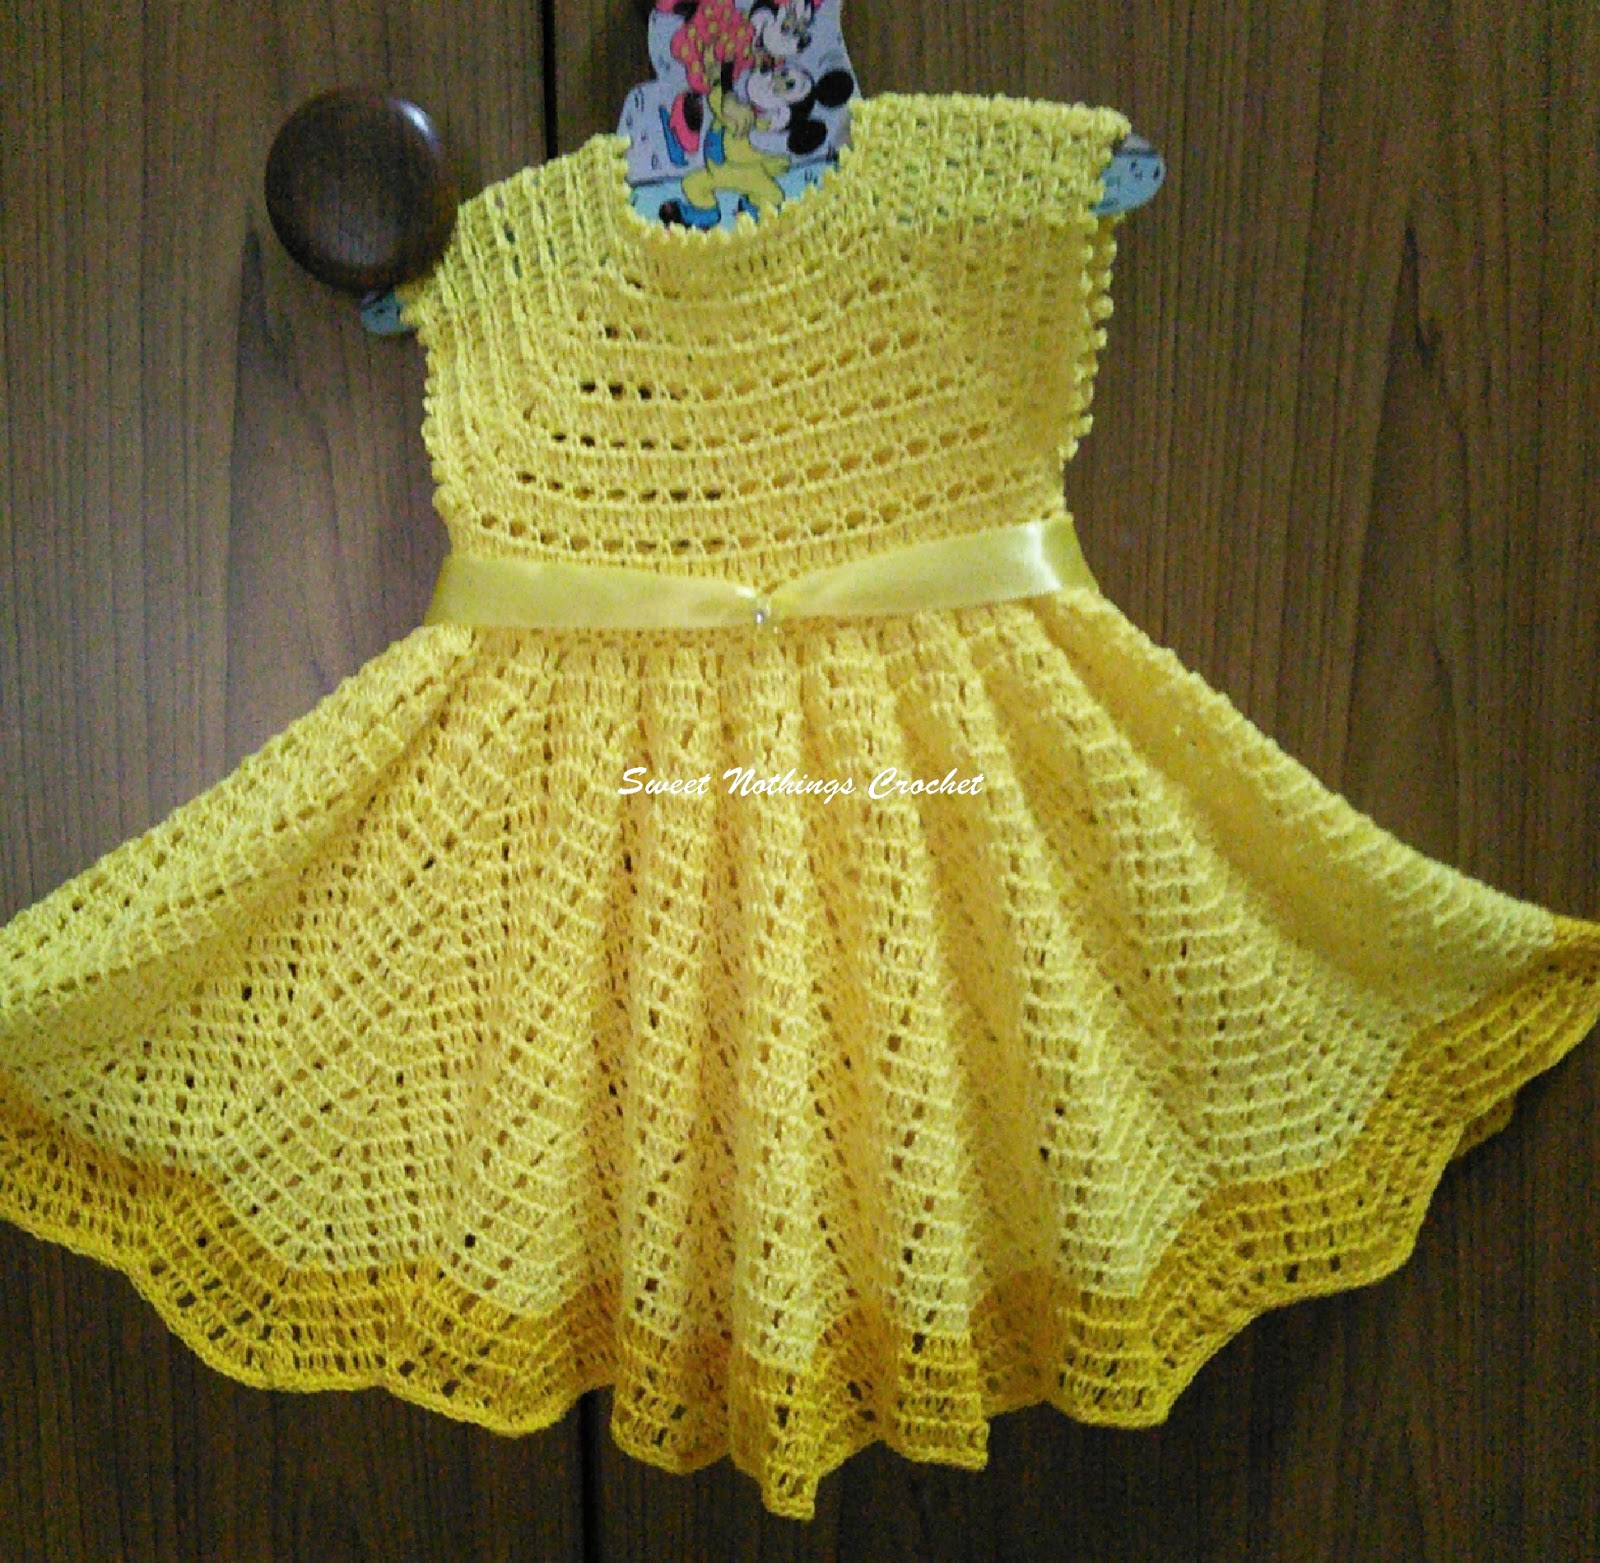 24633dc7a49f5 Sweet Nothings Crochet  EXQUISITE CHEVRON BABY DRESS - 2